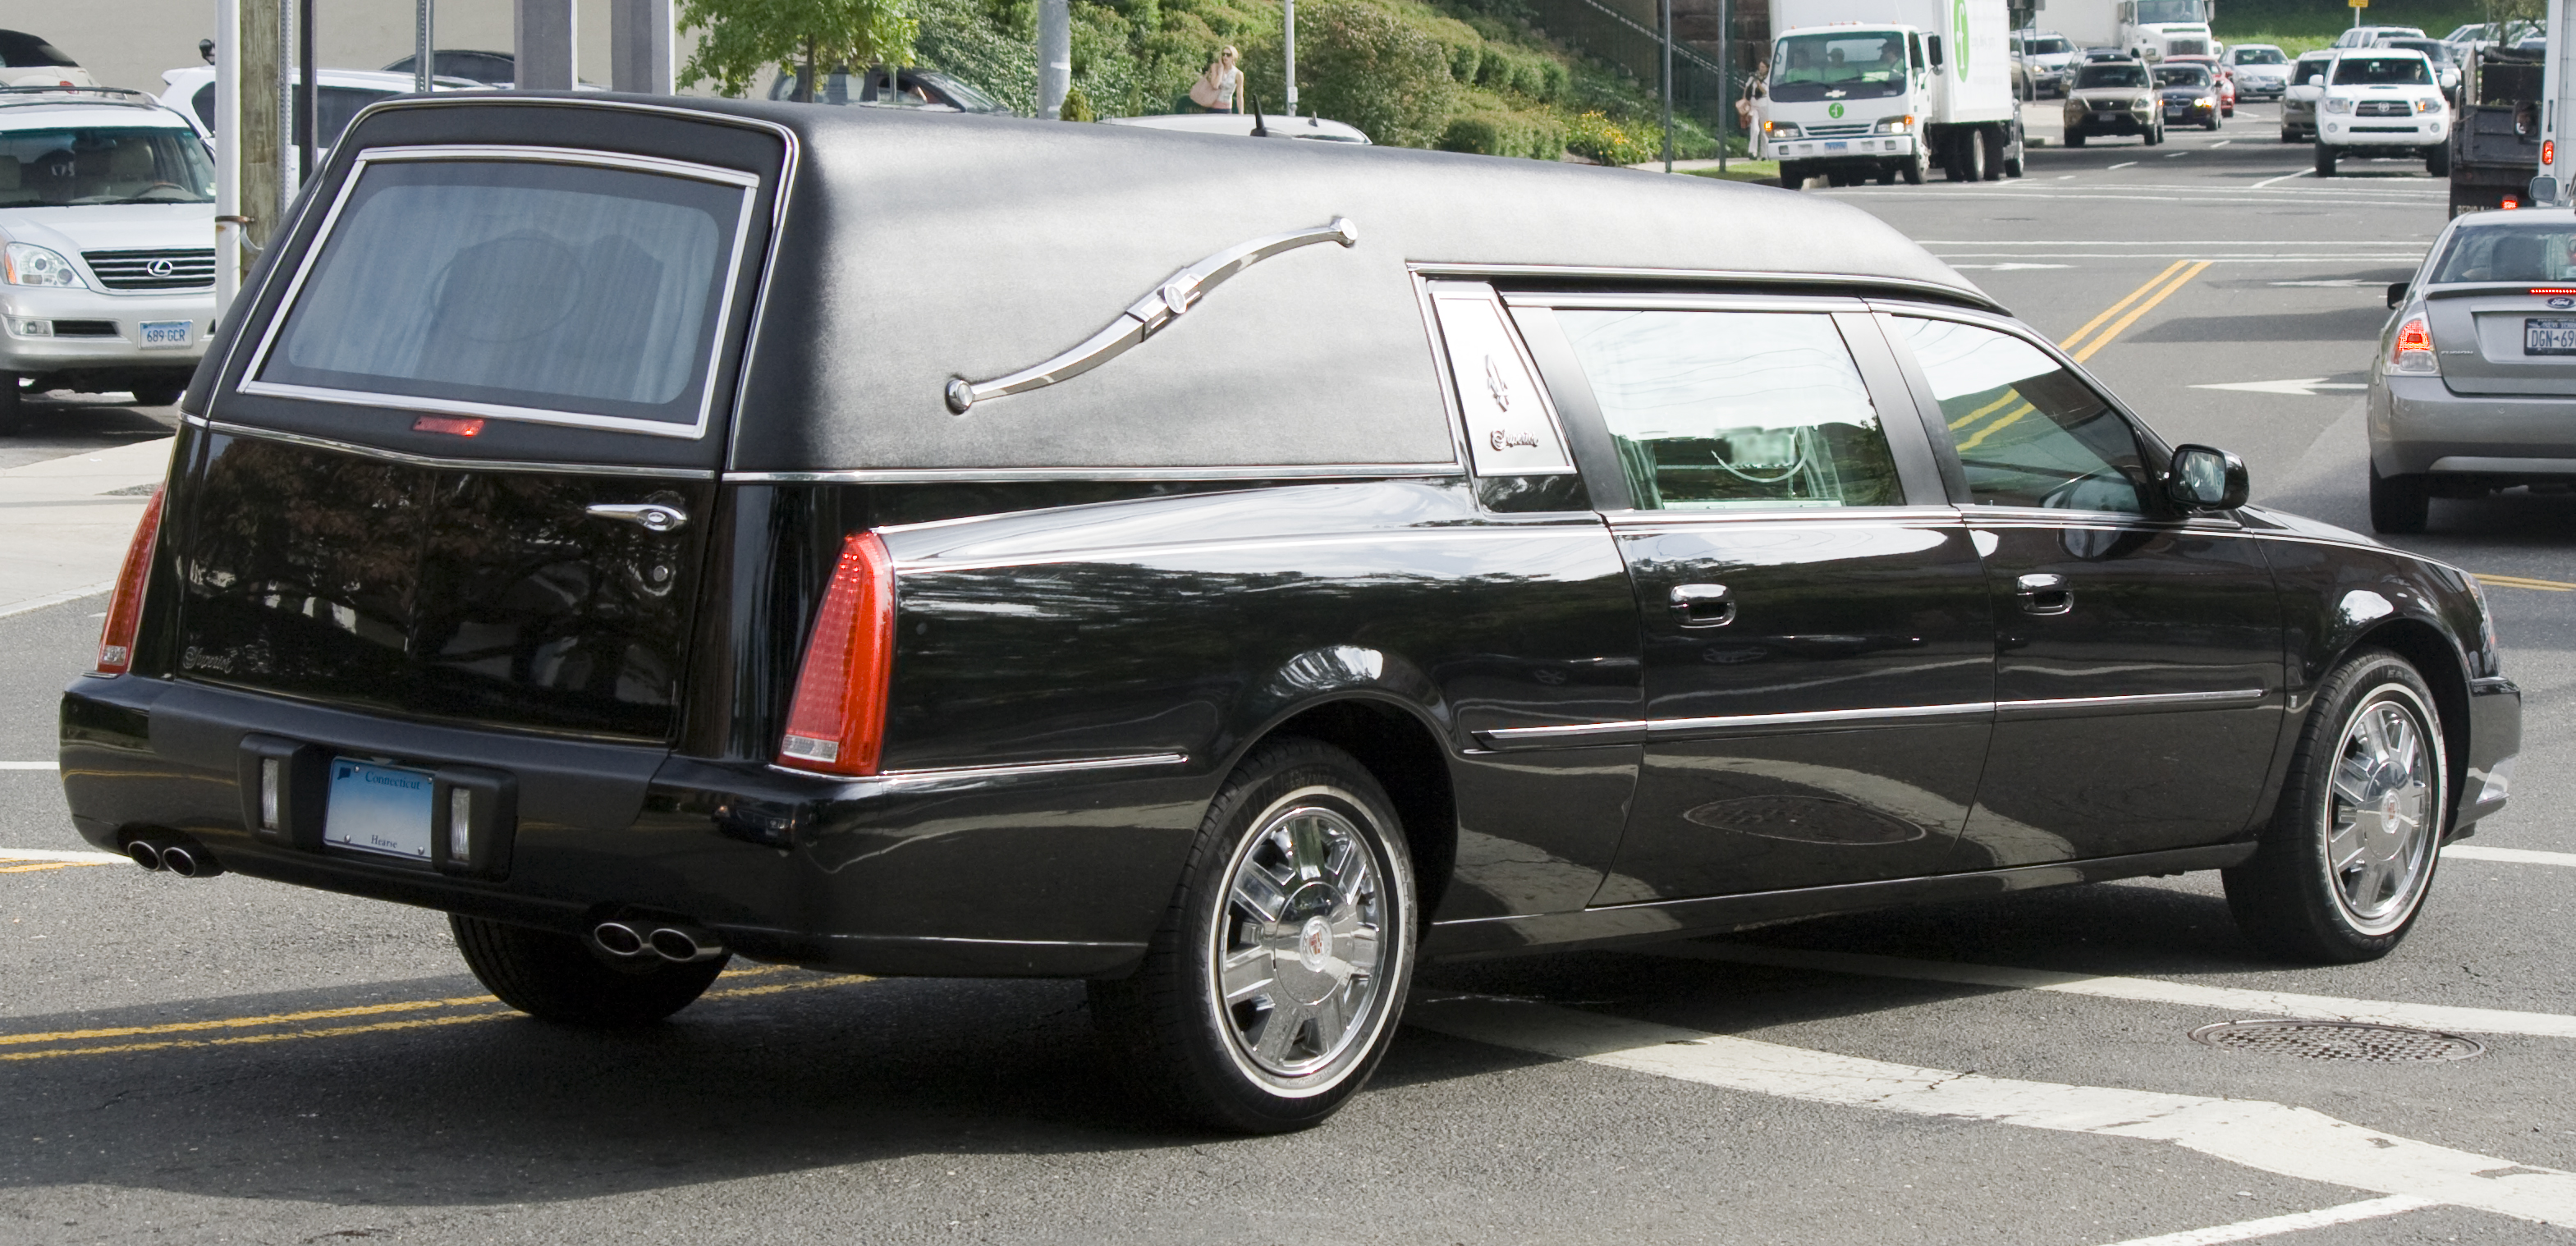 File:Cadillac DTS hearse by Superior.jpg